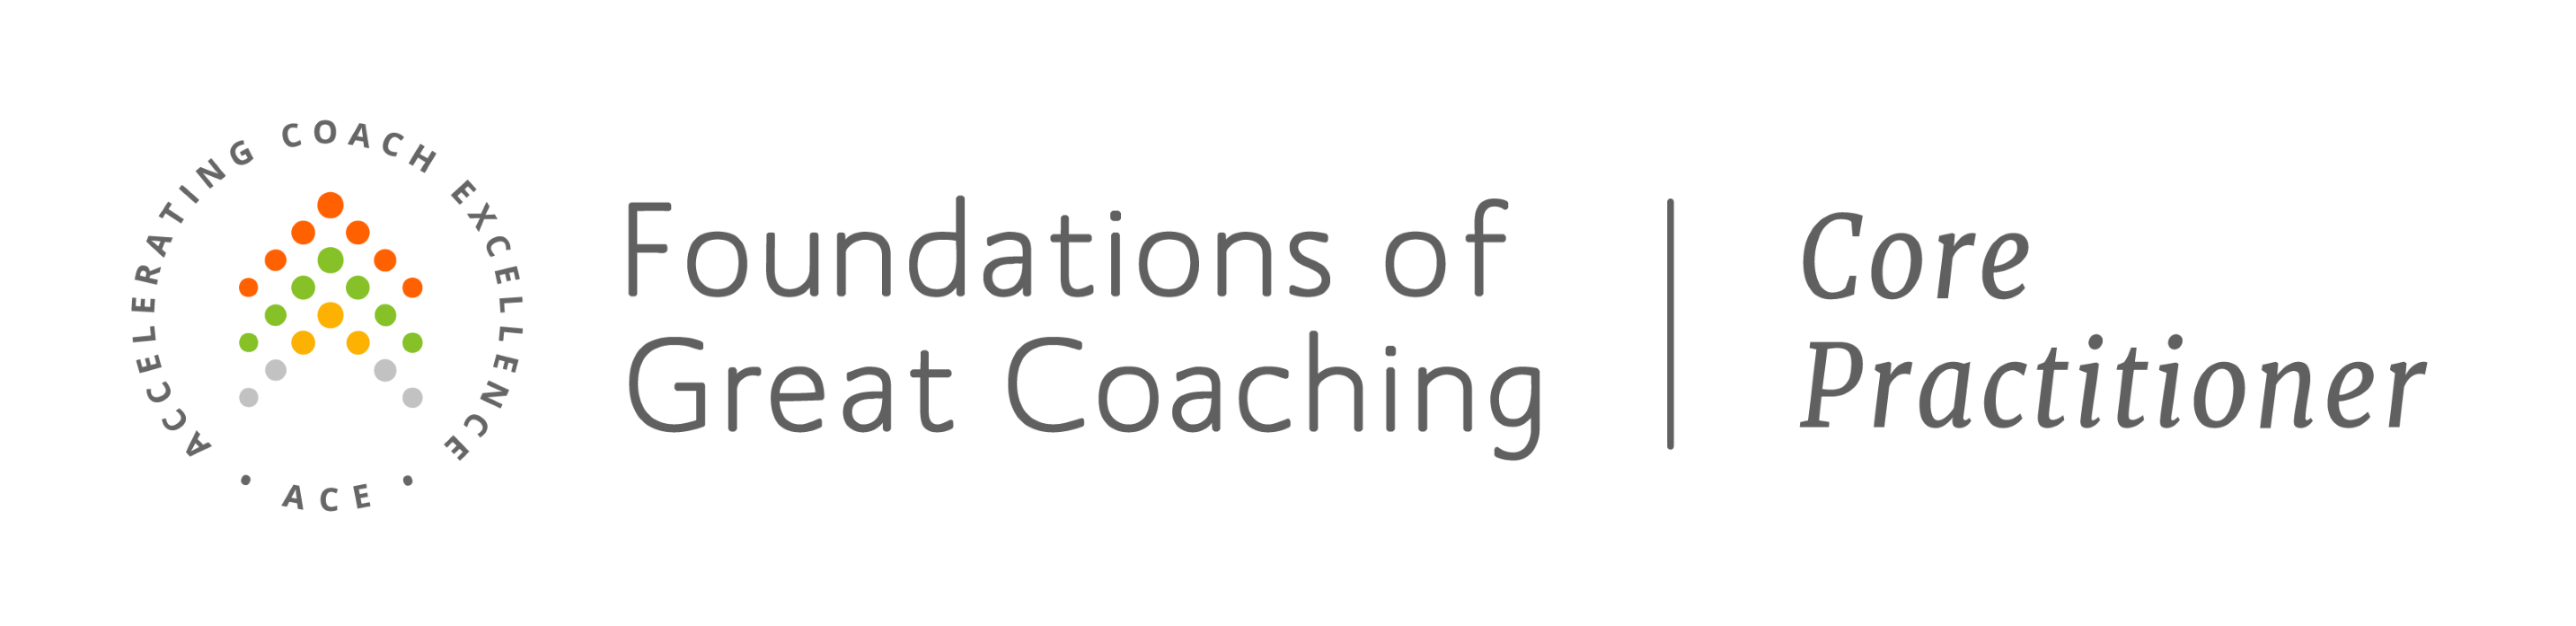 ACE-Foundations-of-Great-Coaching-Core-Practitioner-Gray-Logo email